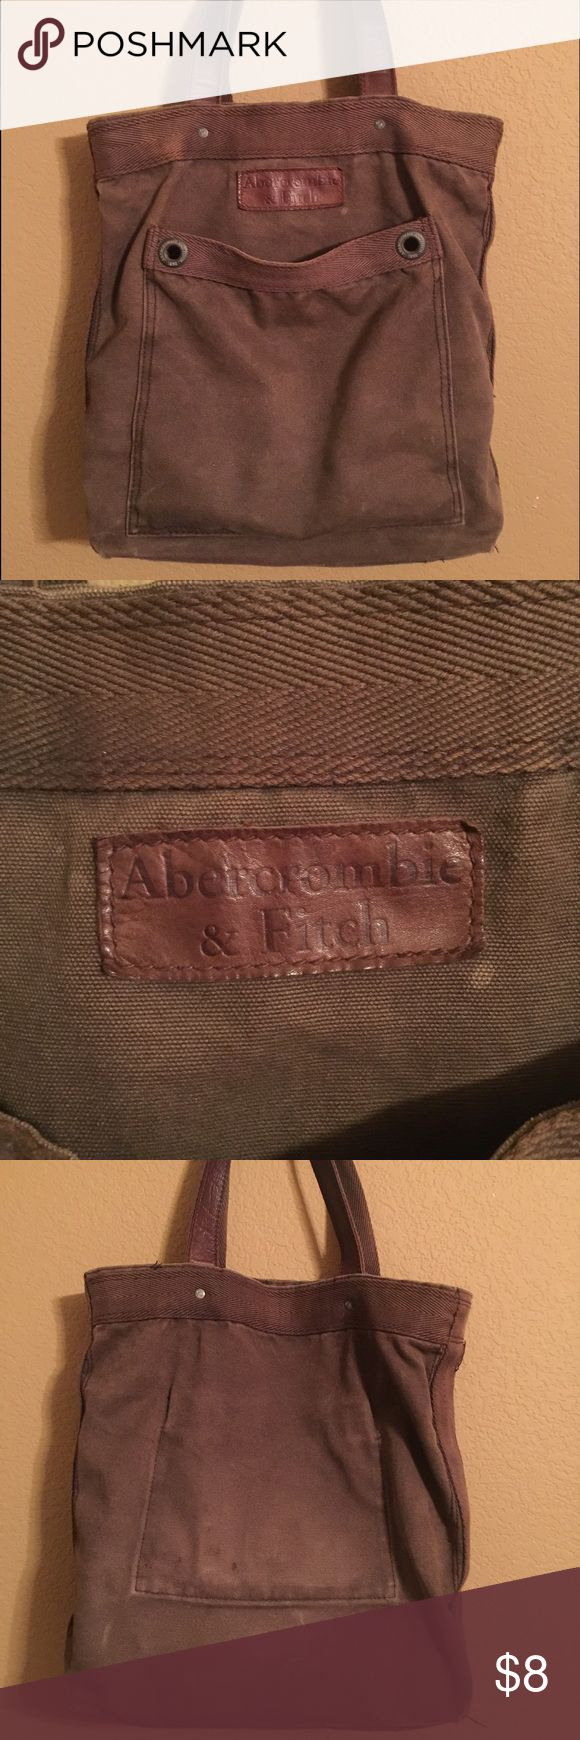 Abercrombie & Fitch Tote Abercrombie and Fitch Tote Brown Bag! Abercrombie & Fitch Bags Totes